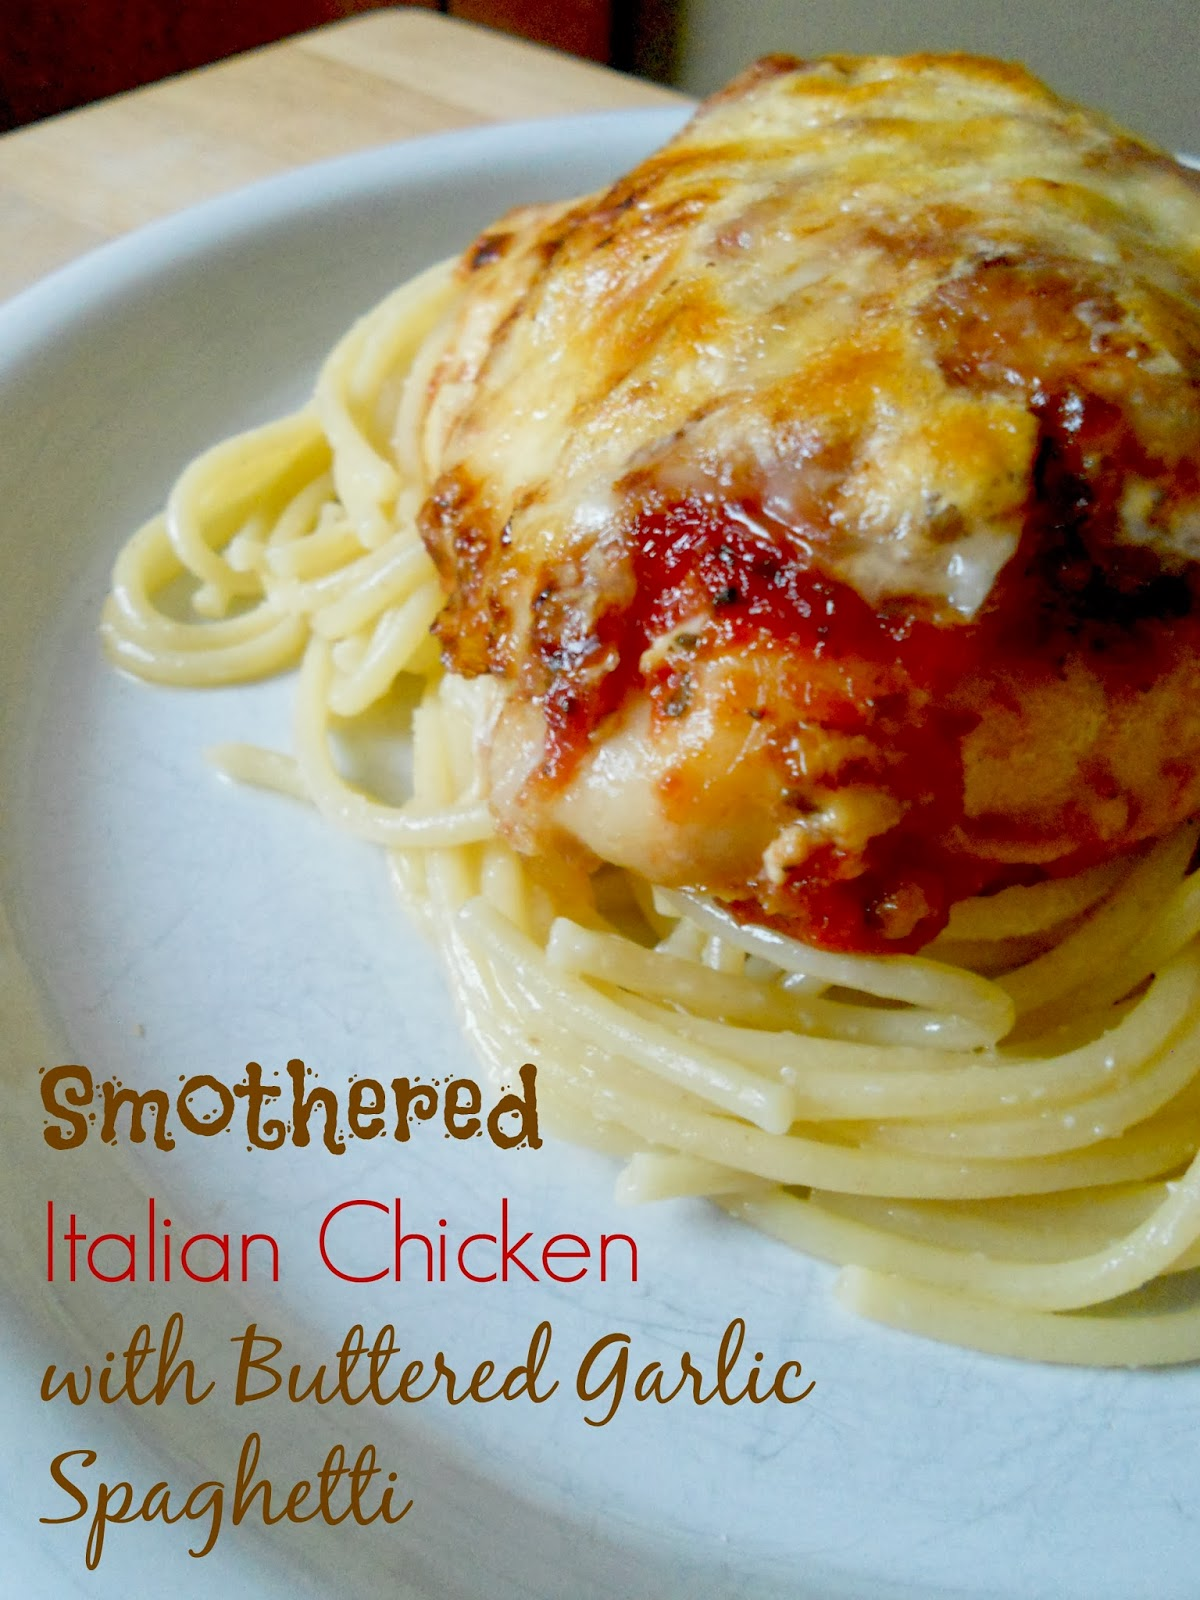 smothered italian chicken with buttered garlic spaghetti (www.sweetandsavoryfood.com)